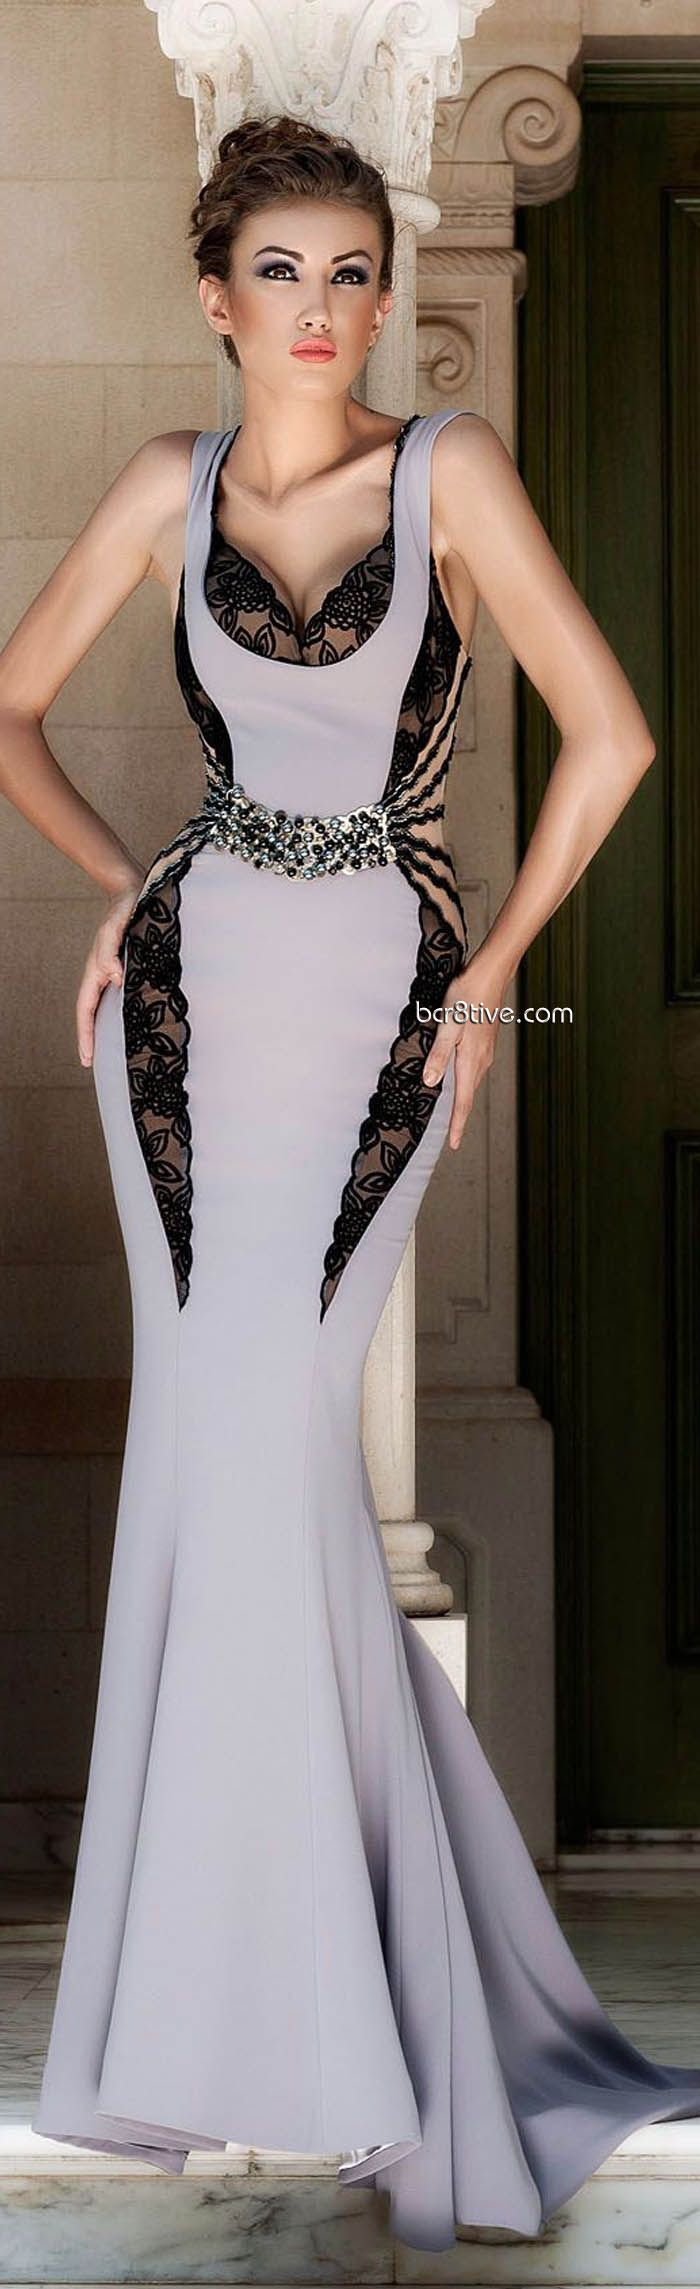 Mireille dagher spring summer ready to wear the dress is way